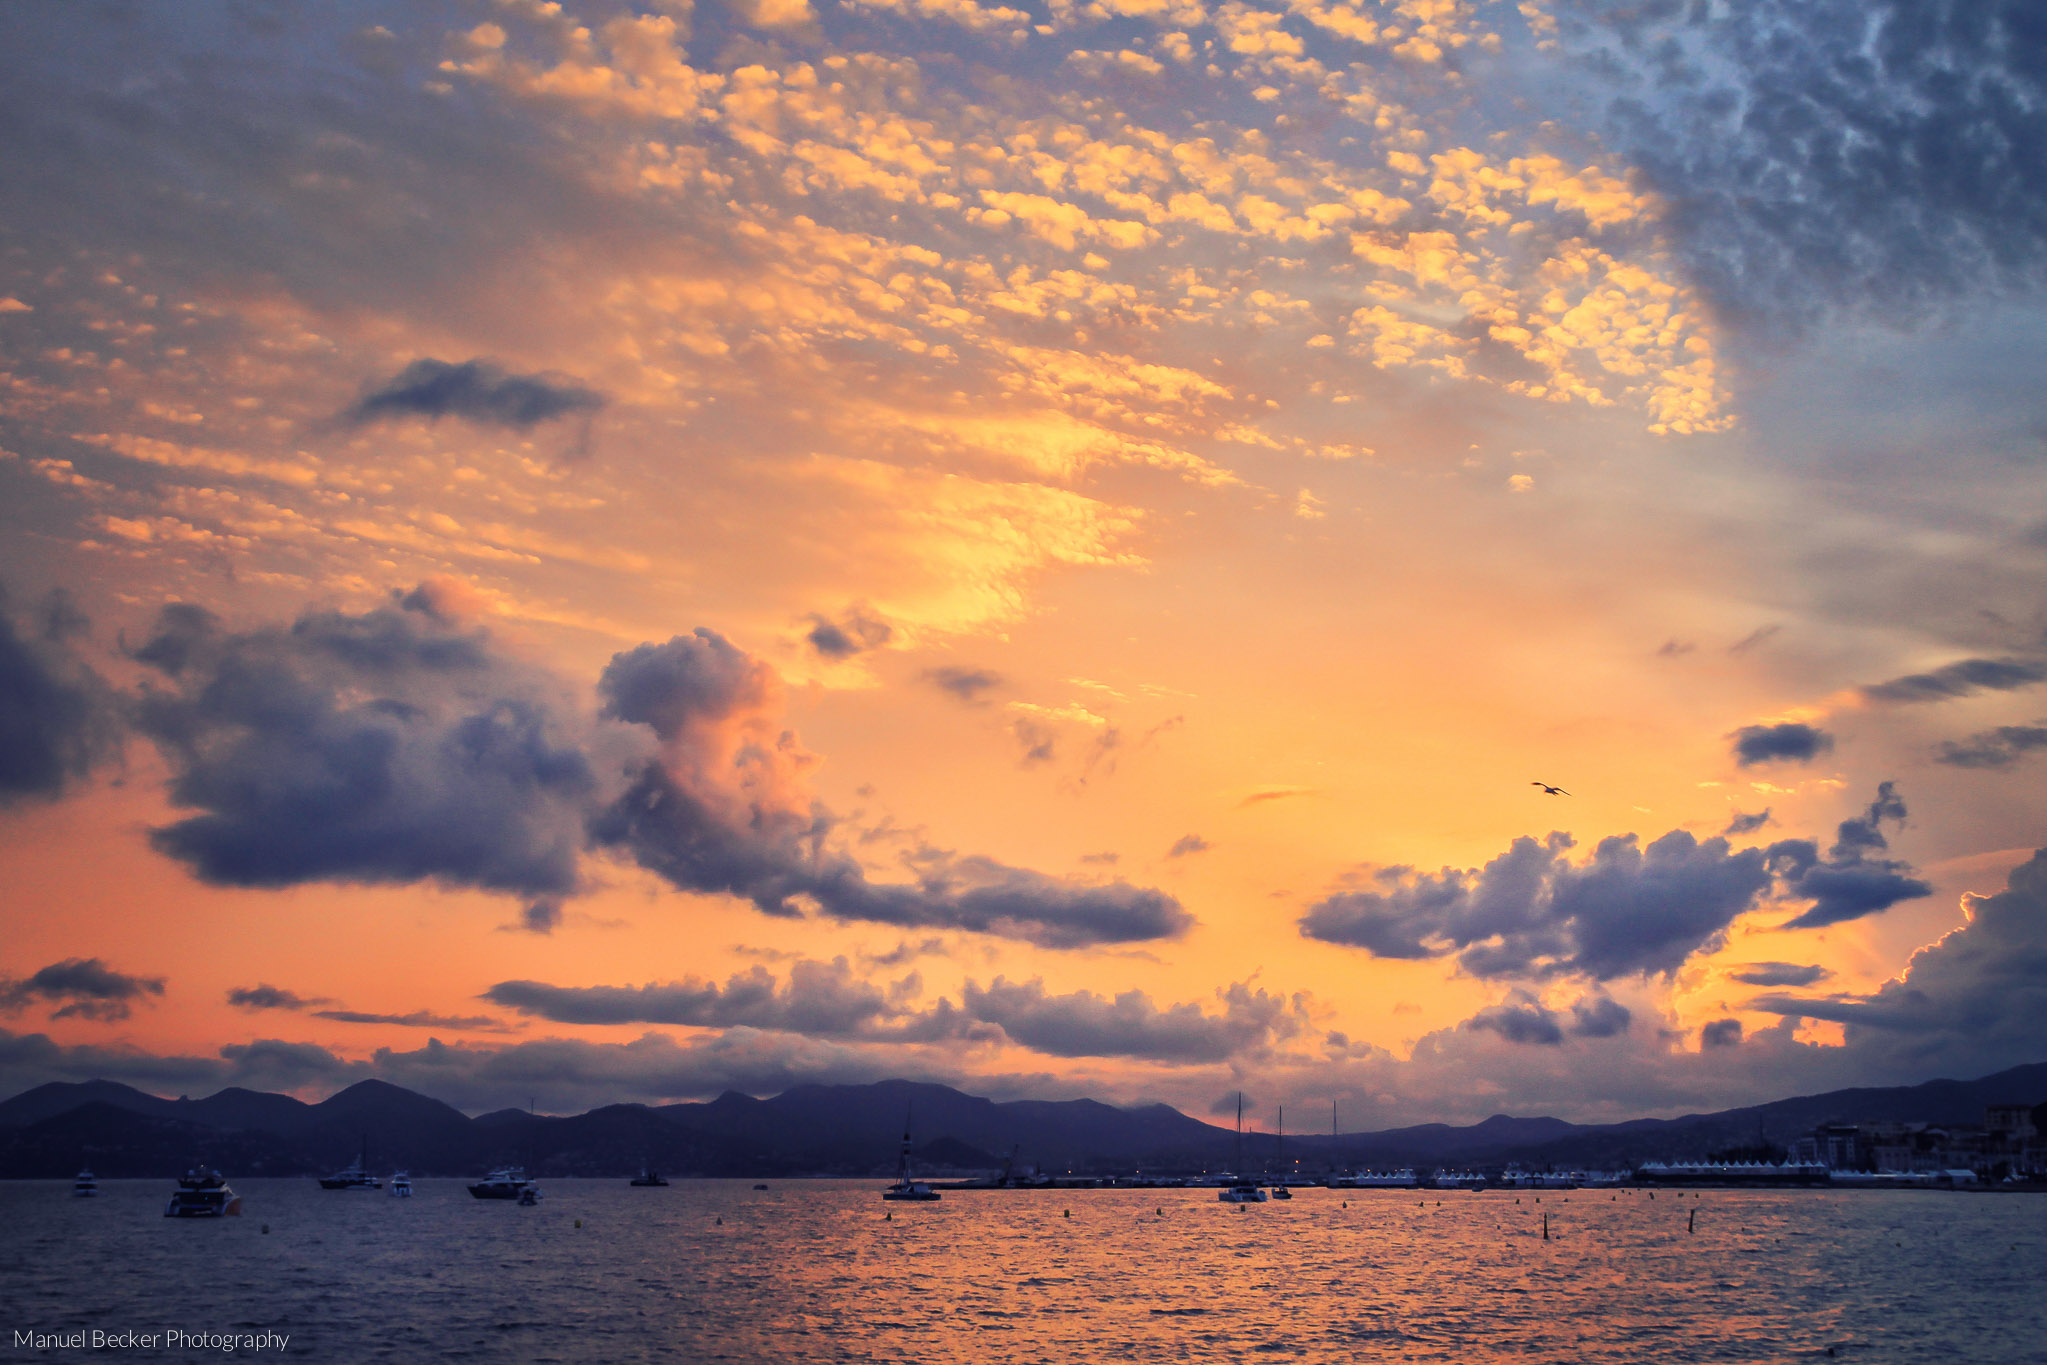 Sunset at Cannes, France